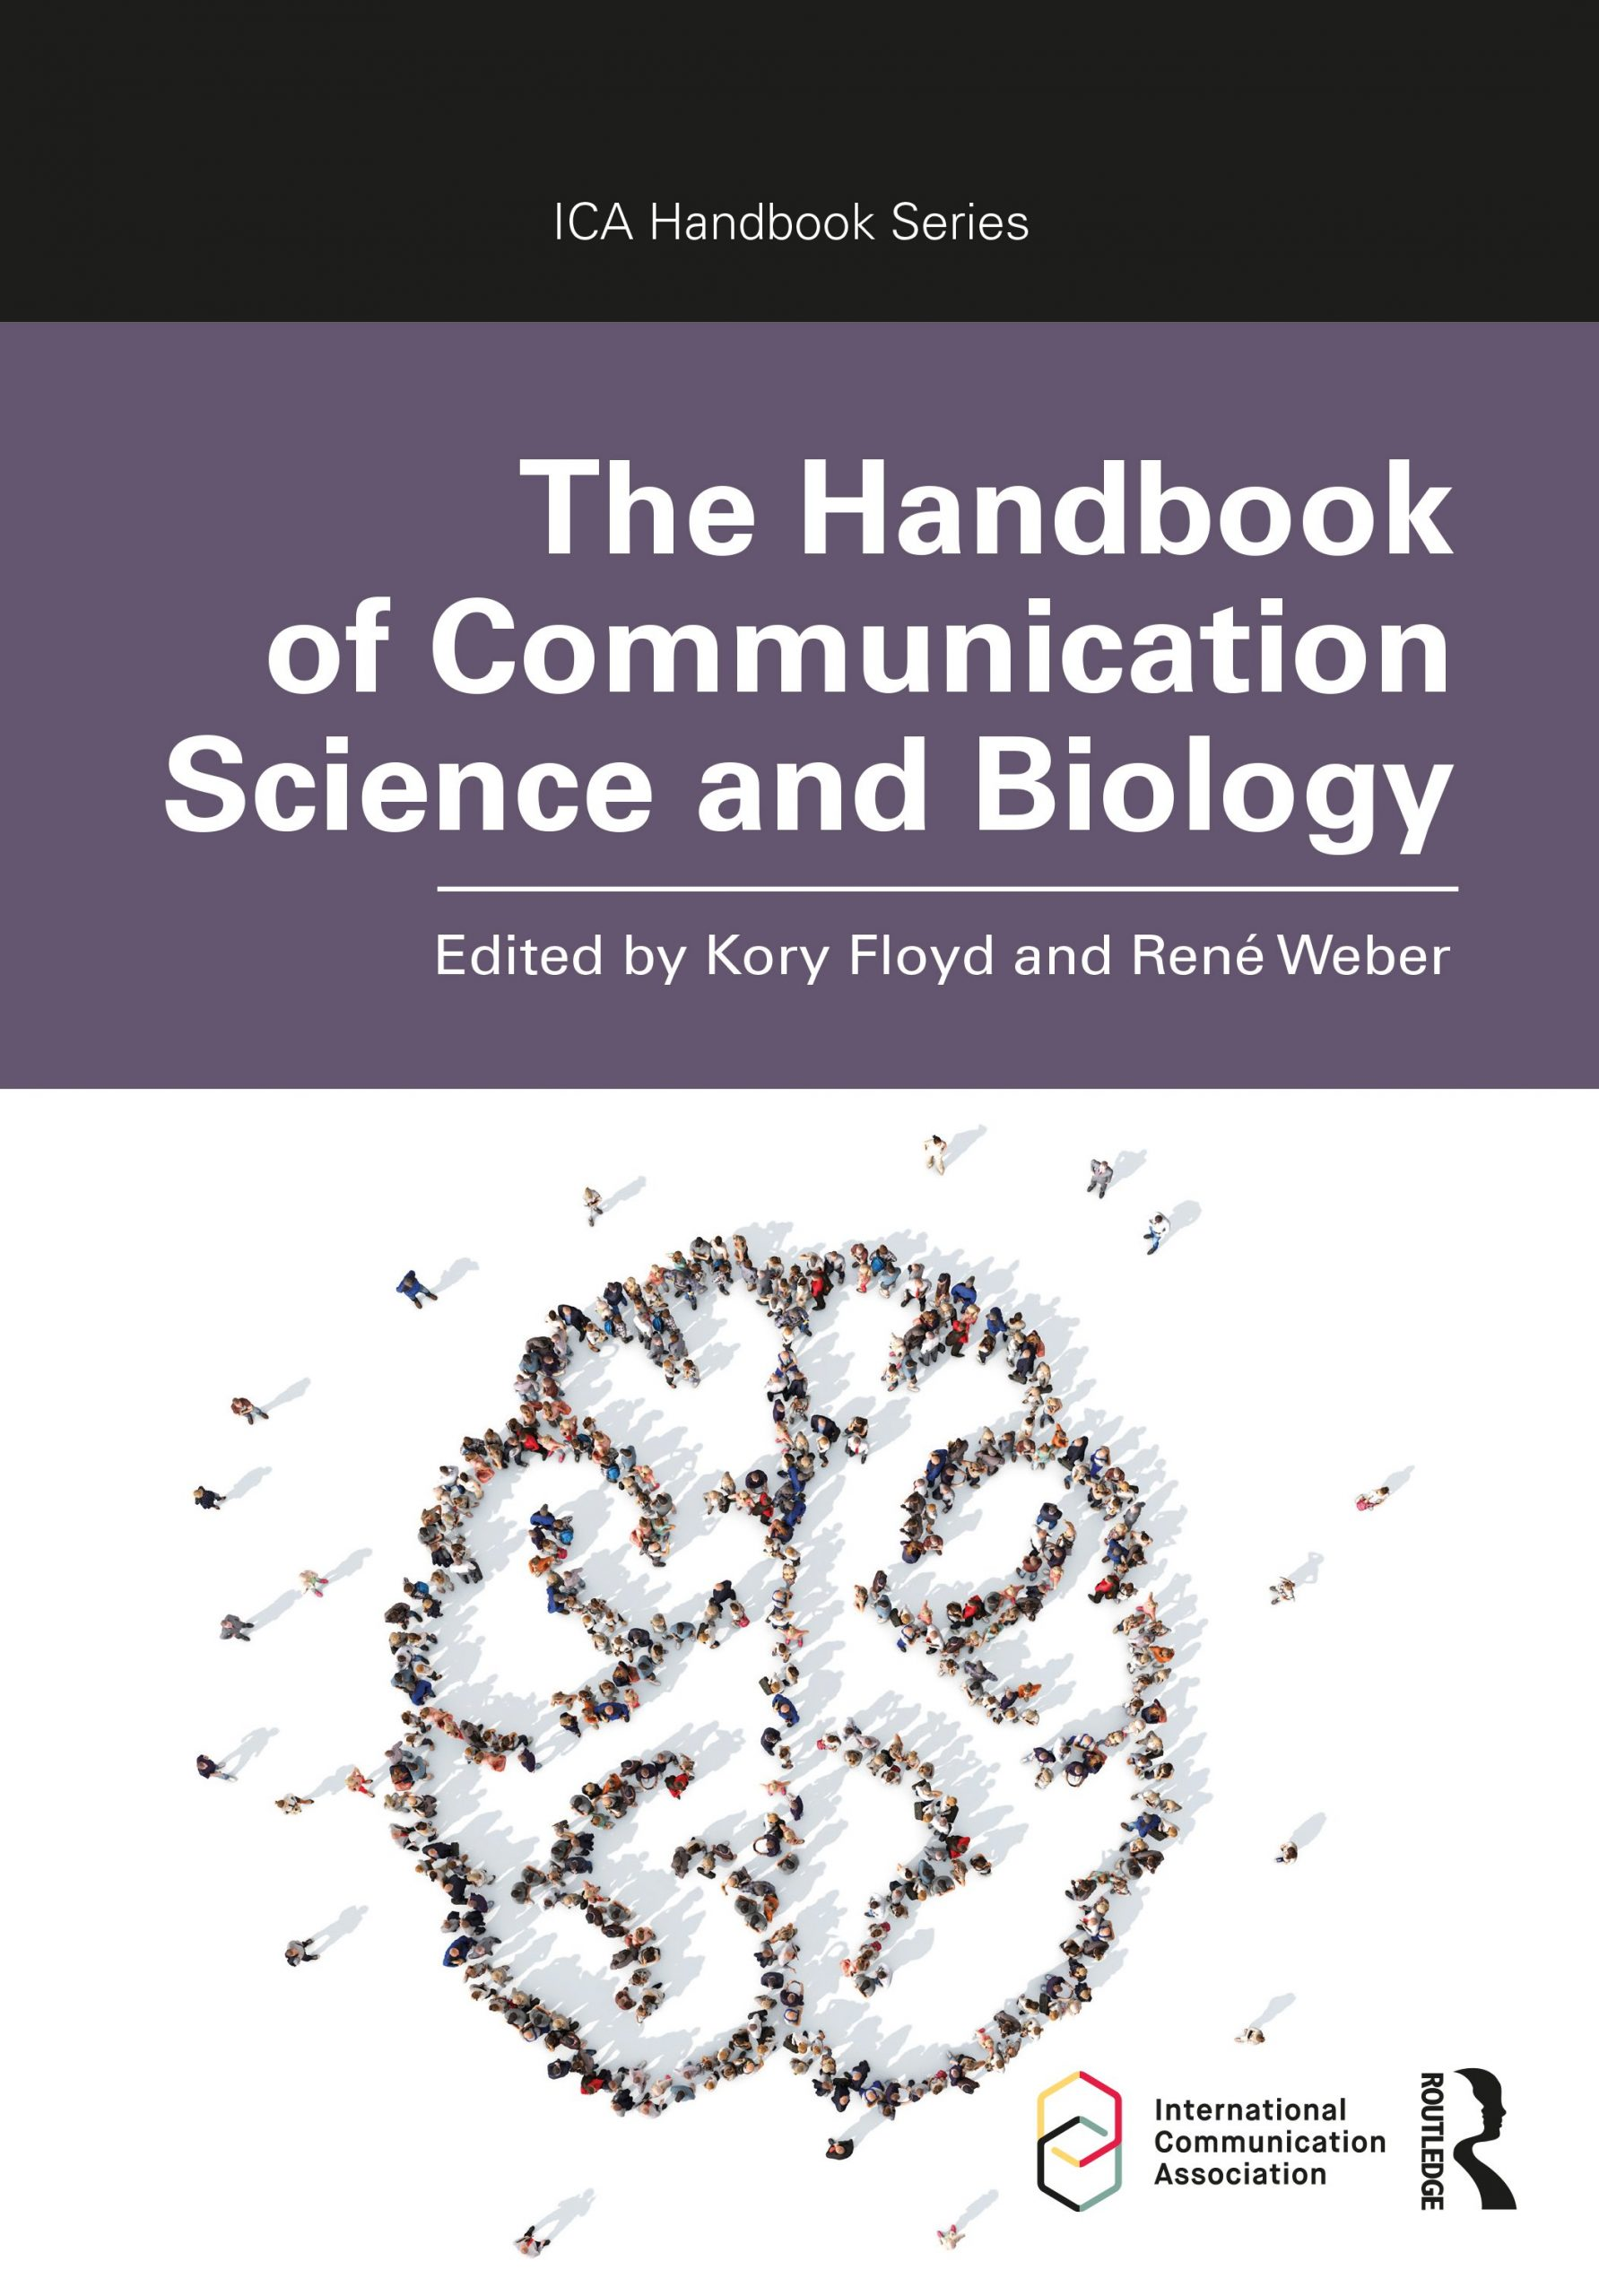 The Handbook of Communication Science and Biology